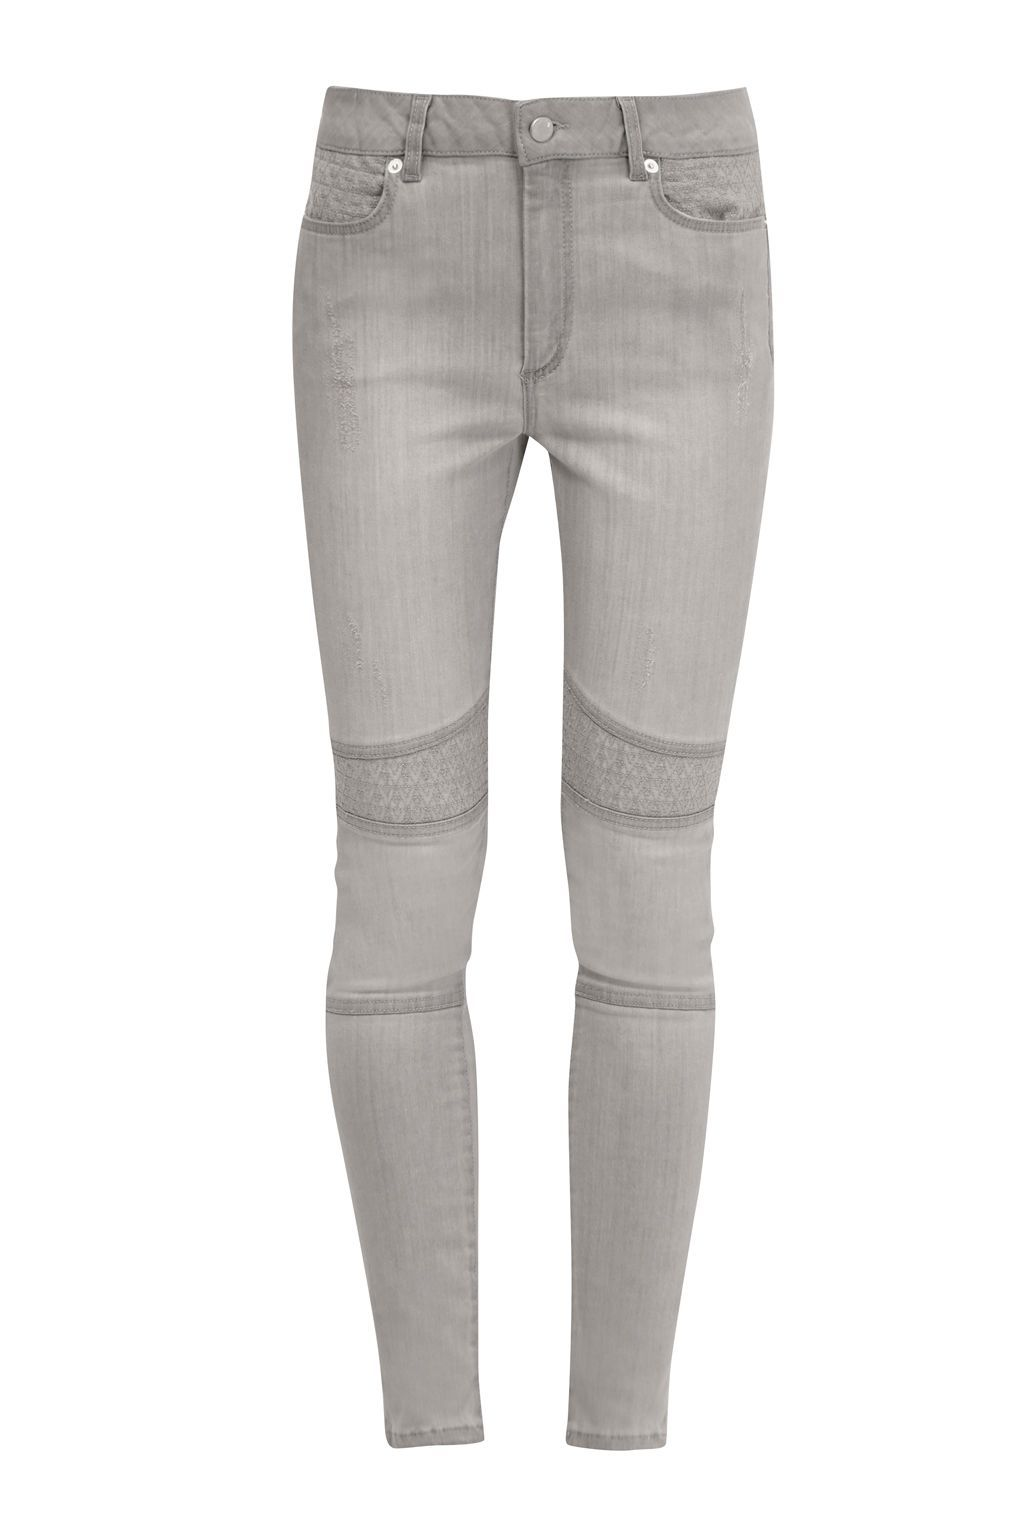 The Rebound Biker Stitch Jeans, Grey - style: skinny leg; length: standard; pattern: plain; pocket detail: traditional 5 pocket; waist: mid/regular rise; predominant colour: light grey; occasions: casual; fibres: cotton - stretch; texture group: denim; pattern type: fabric; season: a/w 2016